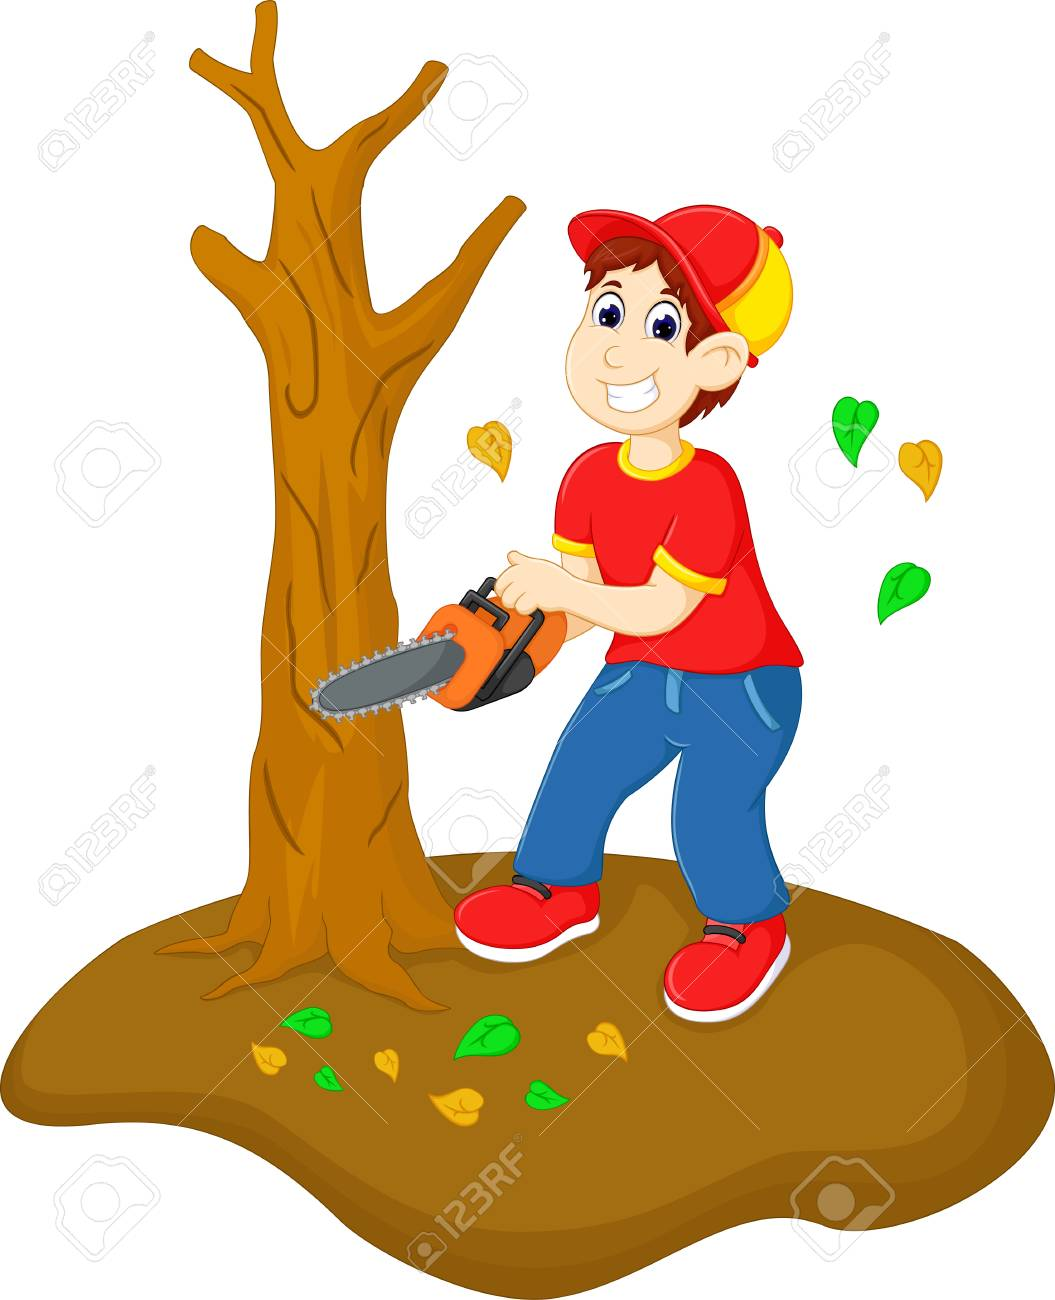 Handsome Boy Cartoon Cutting Tree With Saw Royalty Free Cliparts Vectors And Stock Illustration Image 87921171